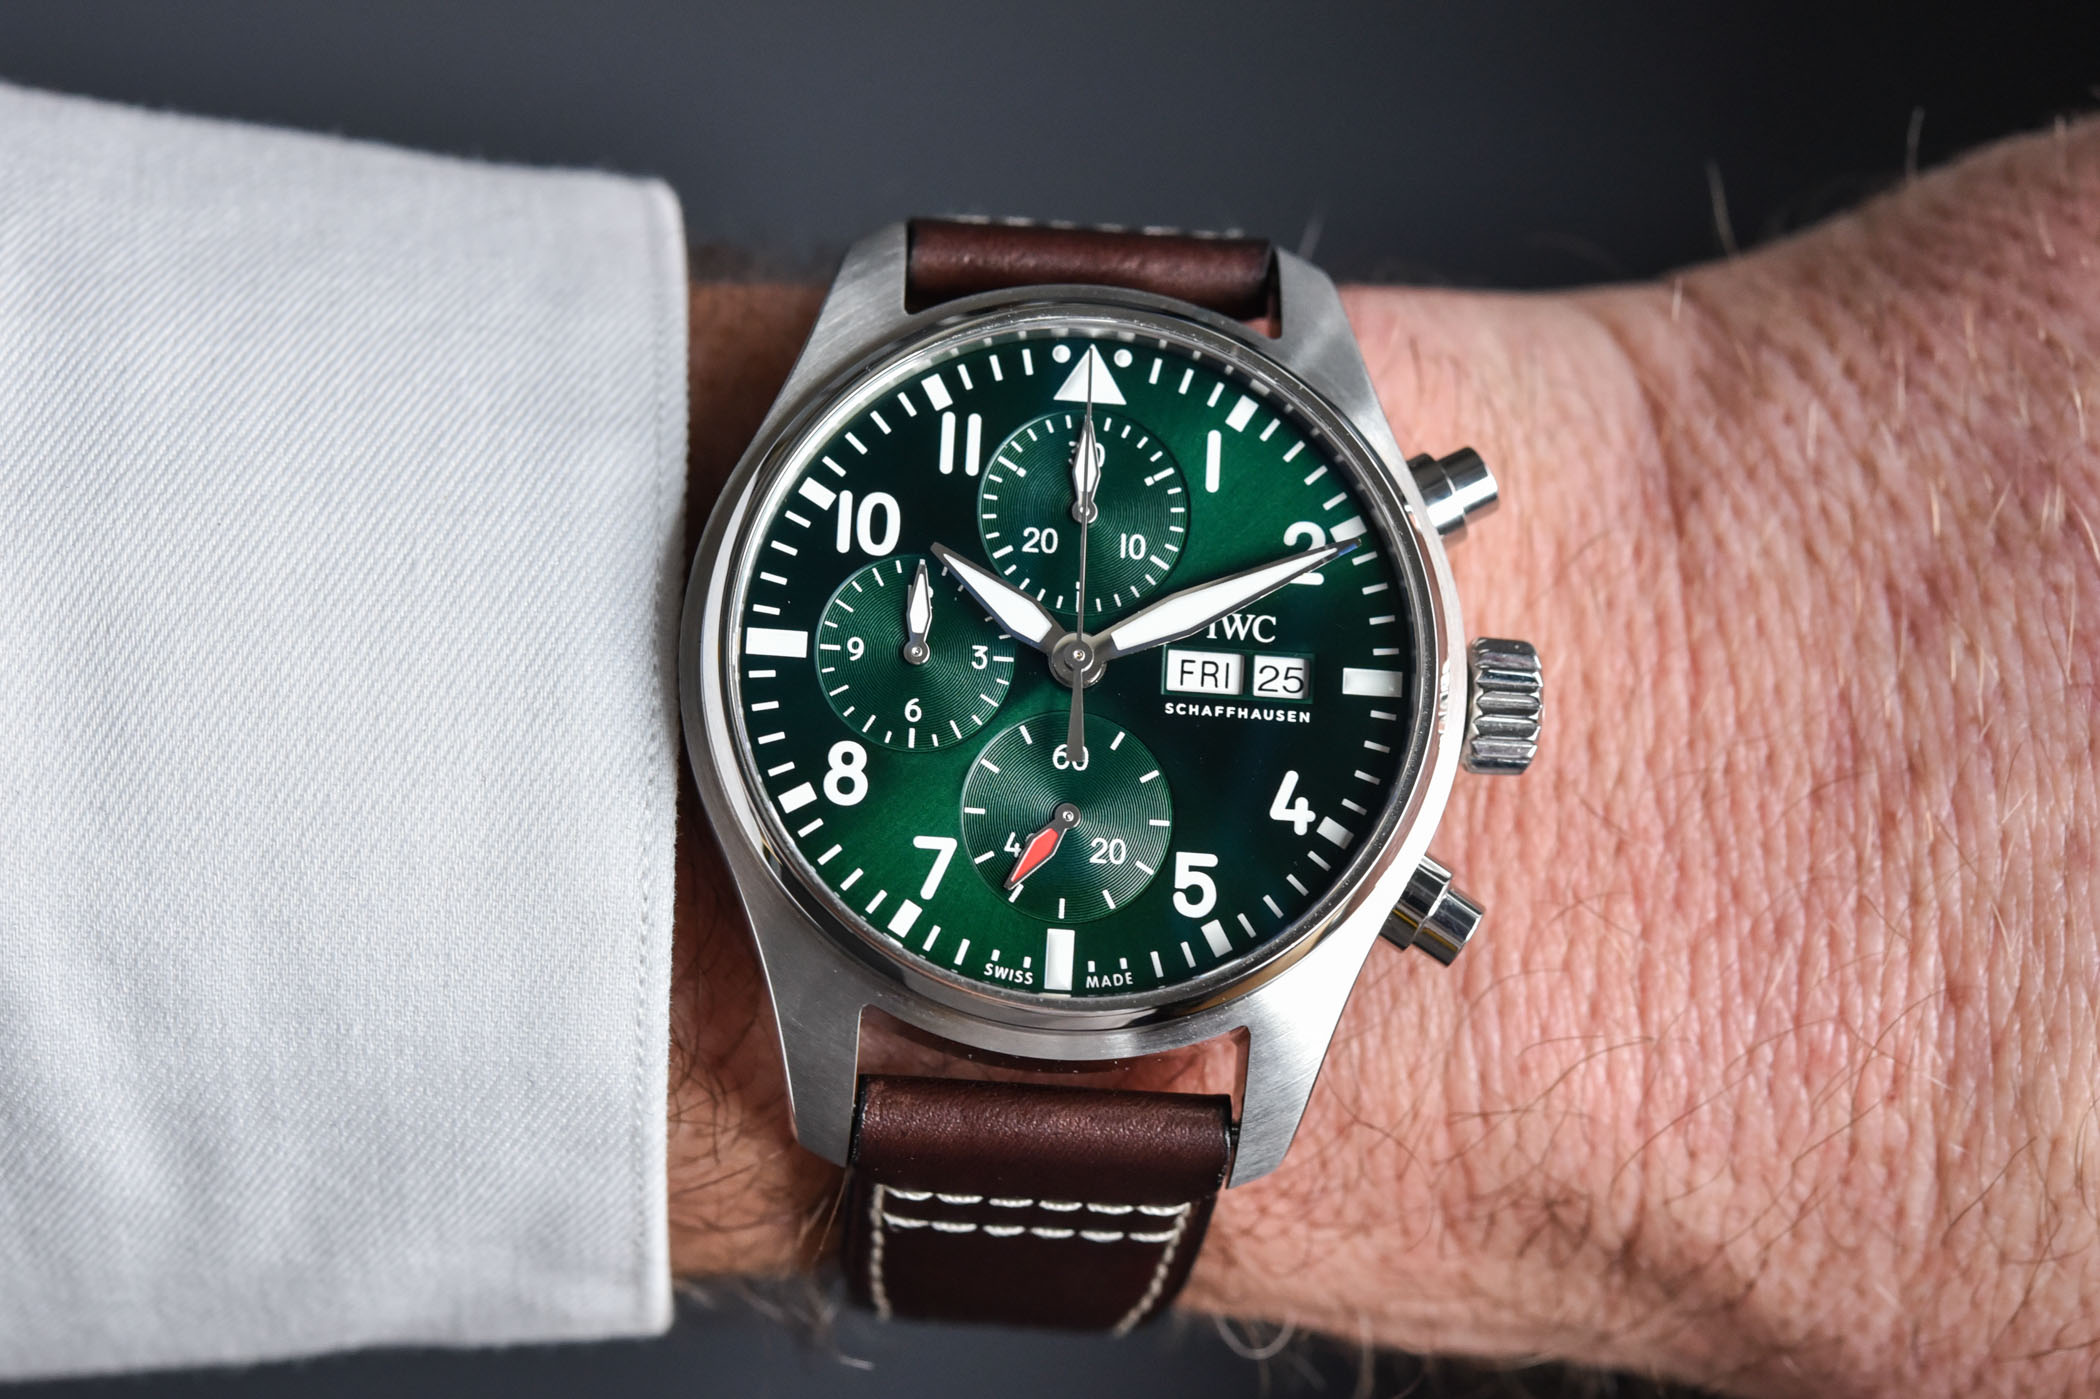 IWC Pilot's Watch Chronograph 41 - IW3881 - review video - 9